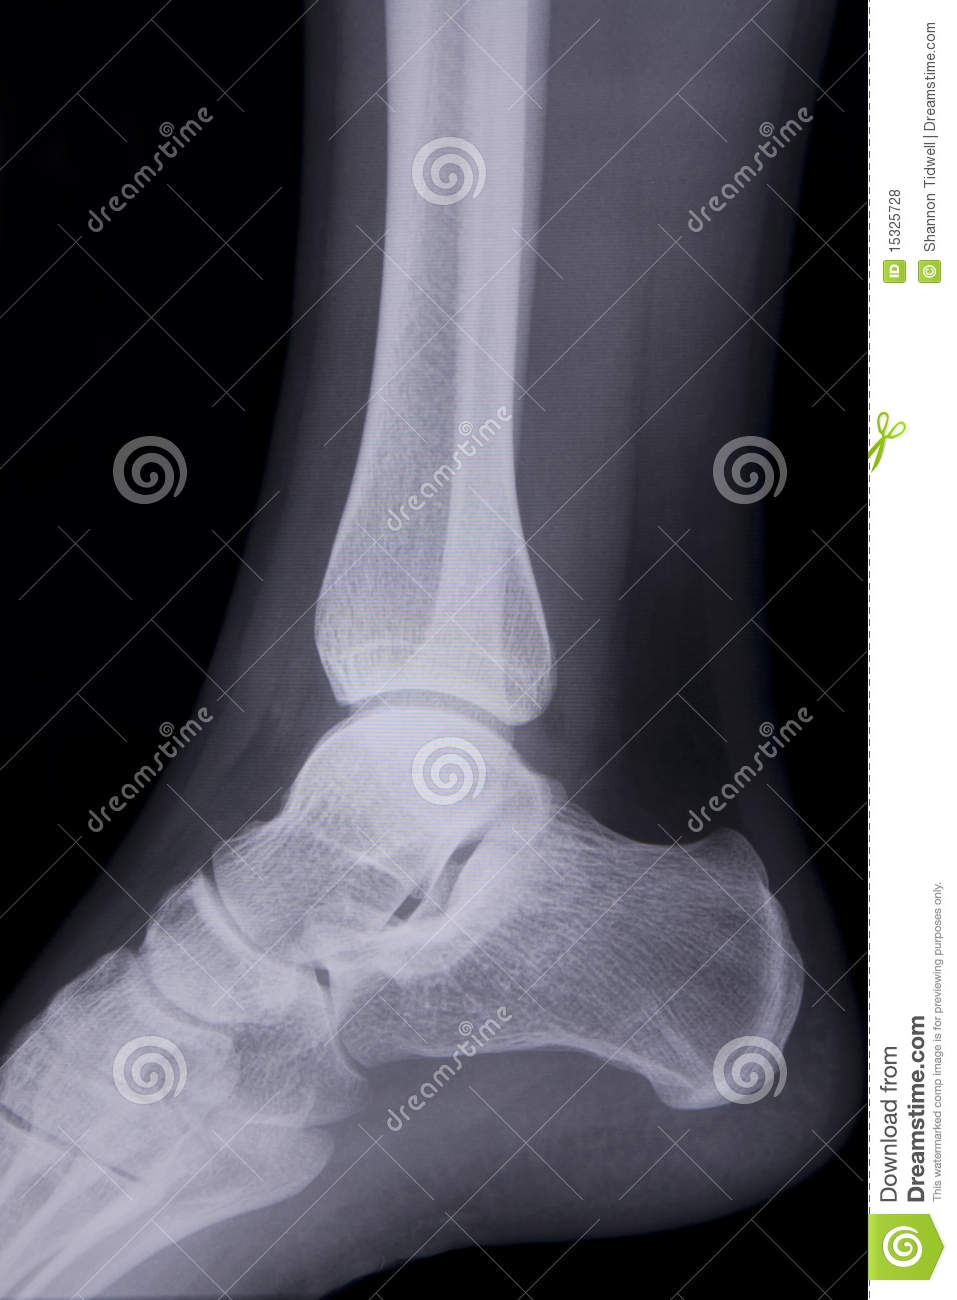 Lateral Ankle X Ray Stock Photo Image Of Skeletal Healthcare